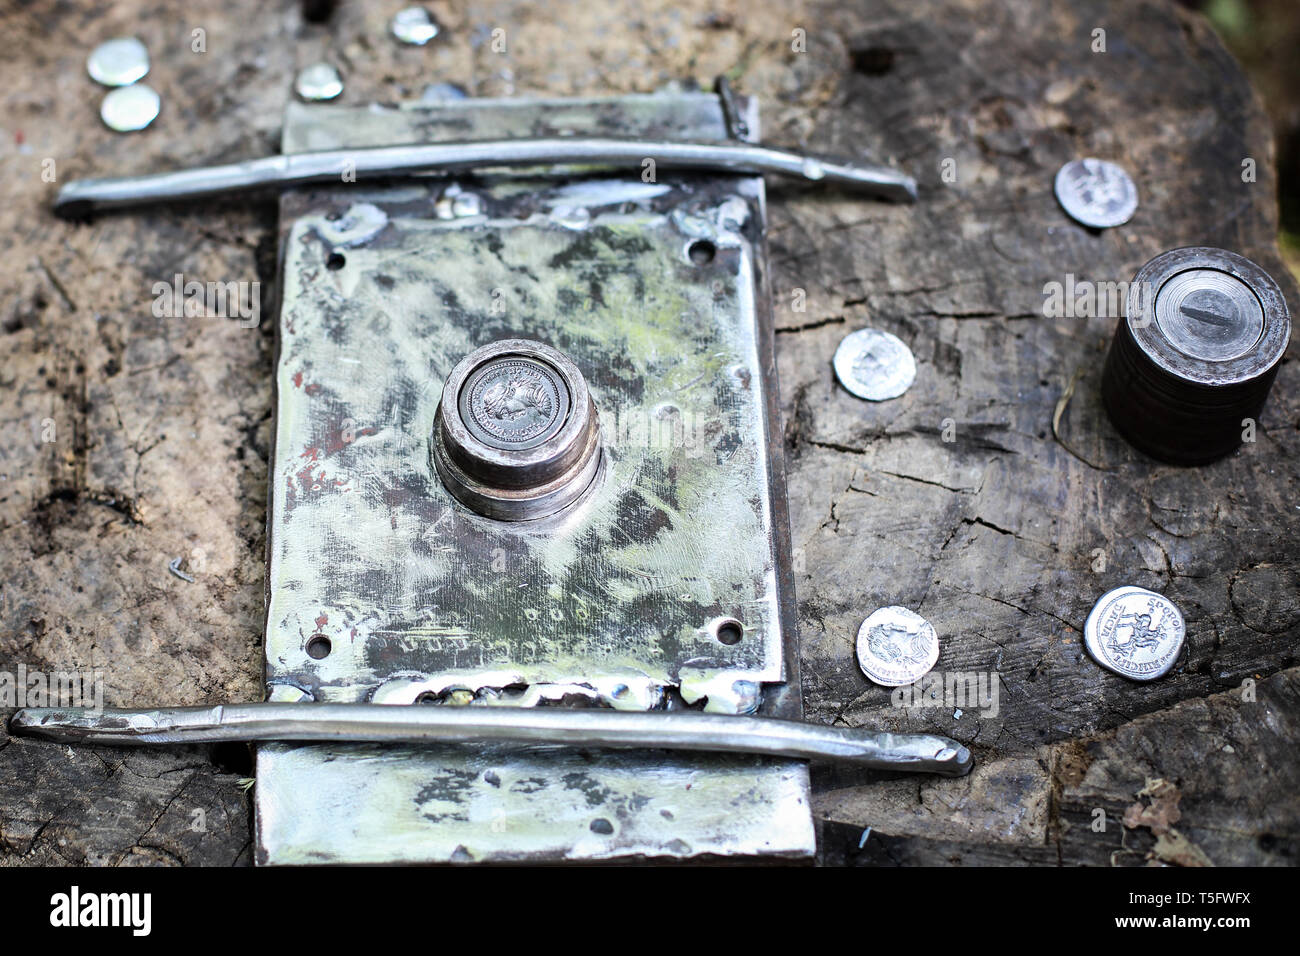 Minting Stock Photos & Minting Stock Images - Alamy